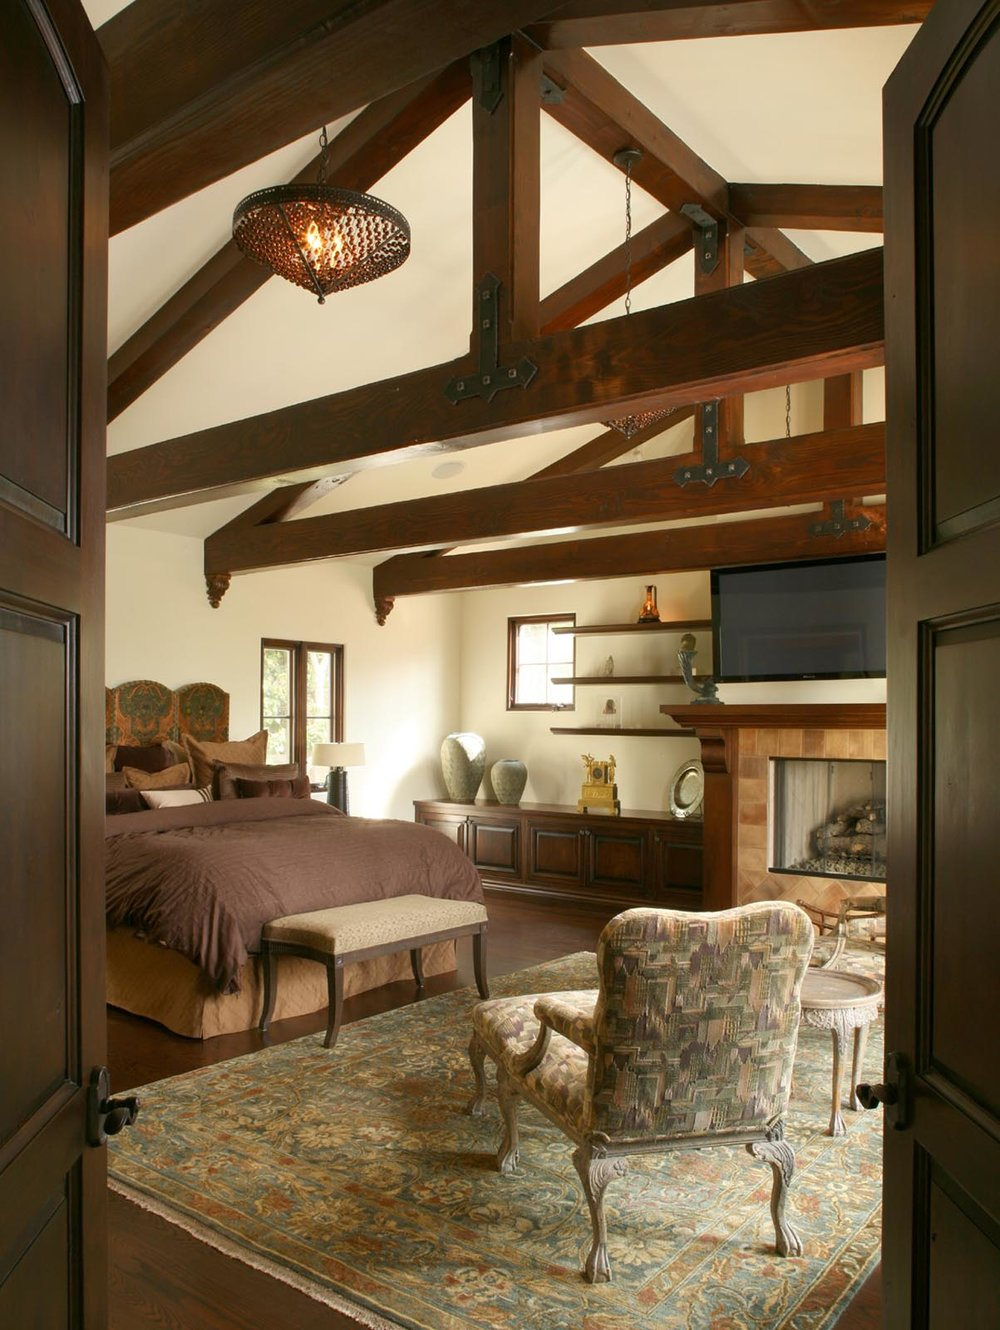 Doheny_MasterBedroom.jpg